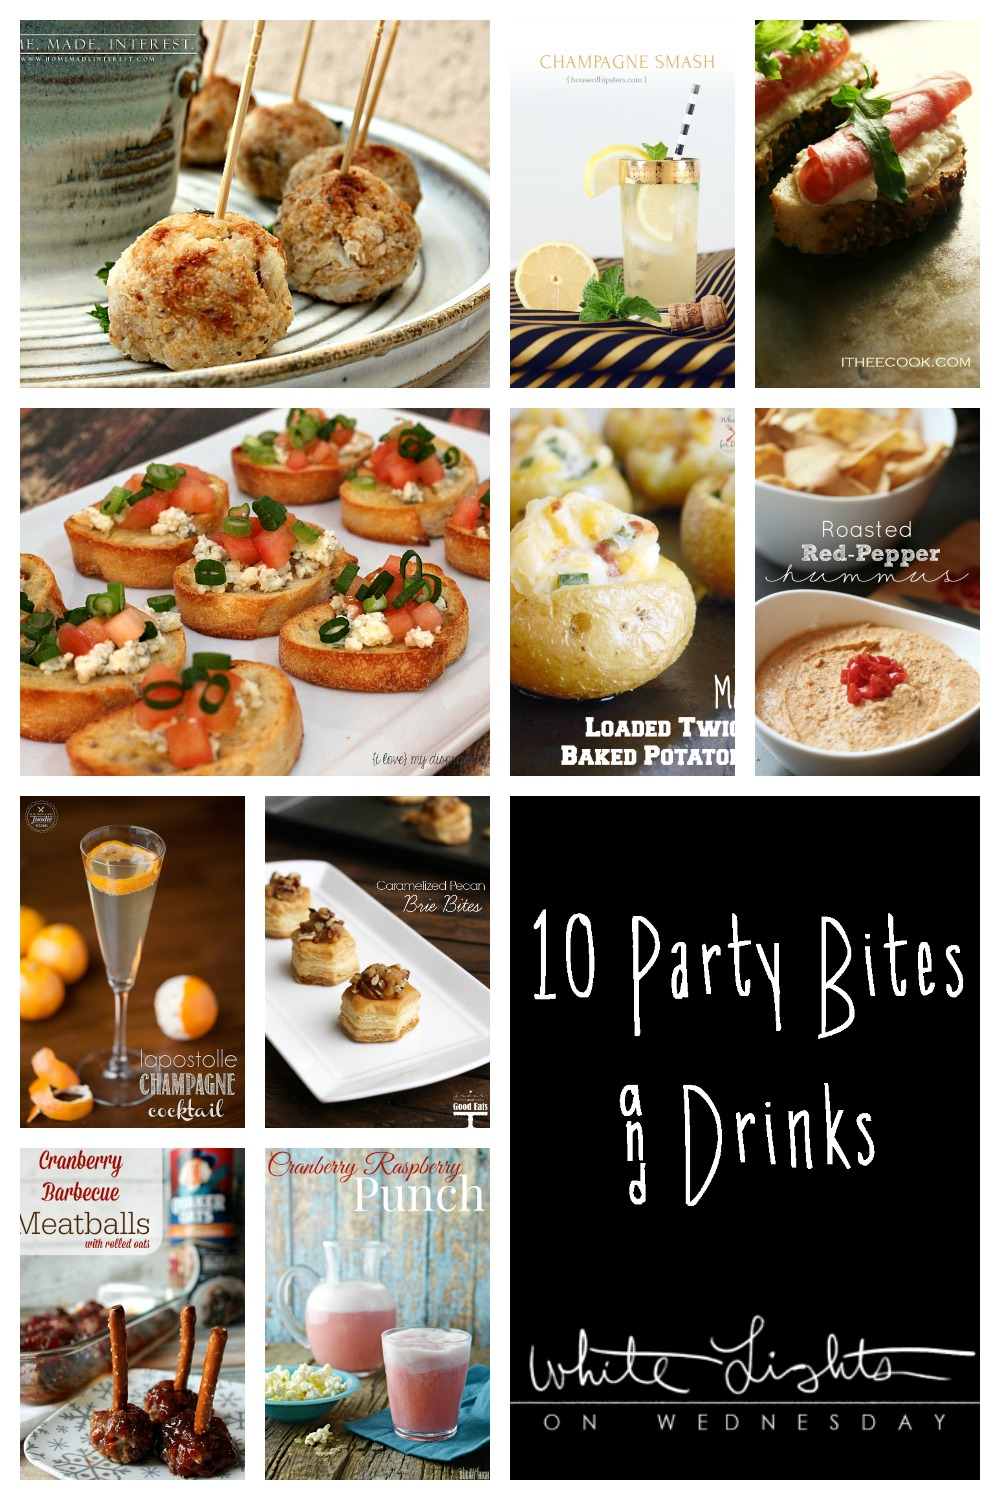 10 Party Bites and Drinks | White Lights on Wednesday